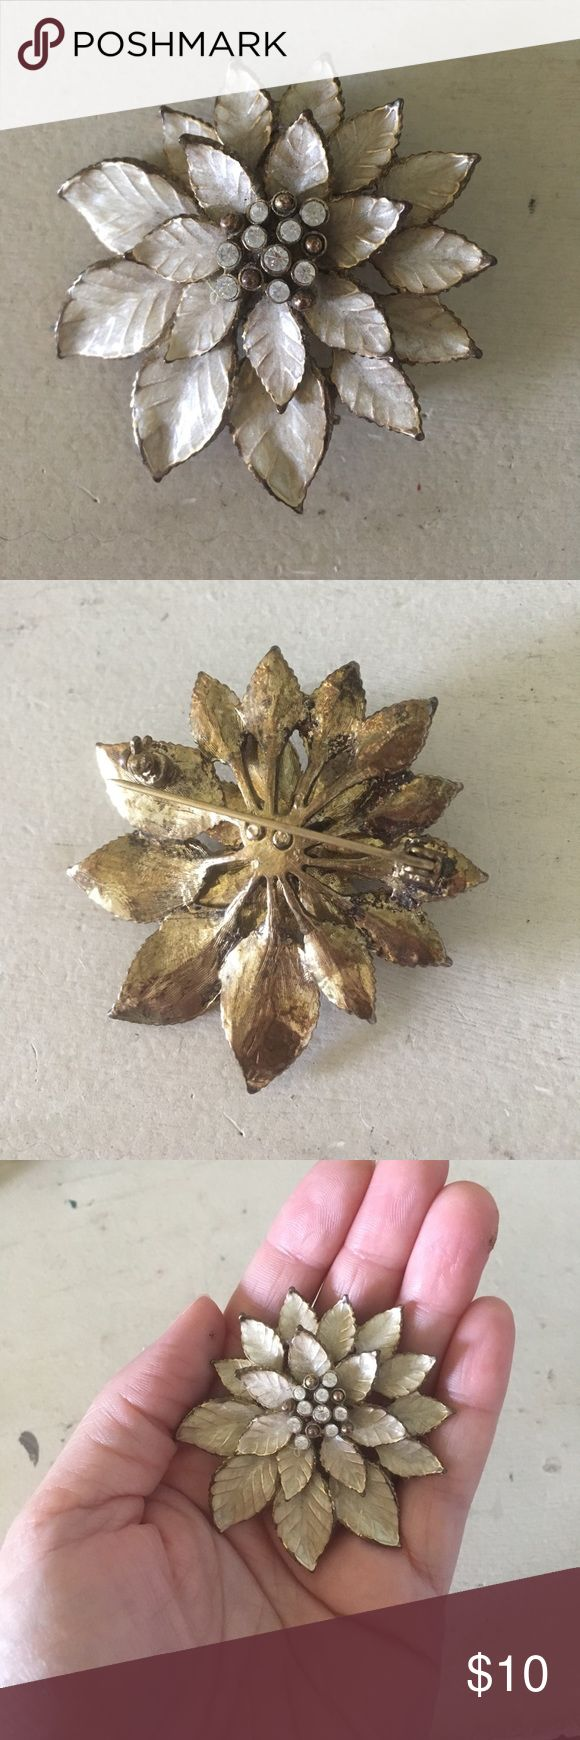 Gold & Cream Poinsettia Brooch So stunning for Christmas- beautiful on a jacket, sweater, or even in a fancy hairstyle! Purchased from Bronner's in Frankenmuth, MI. Jewelry Brooches